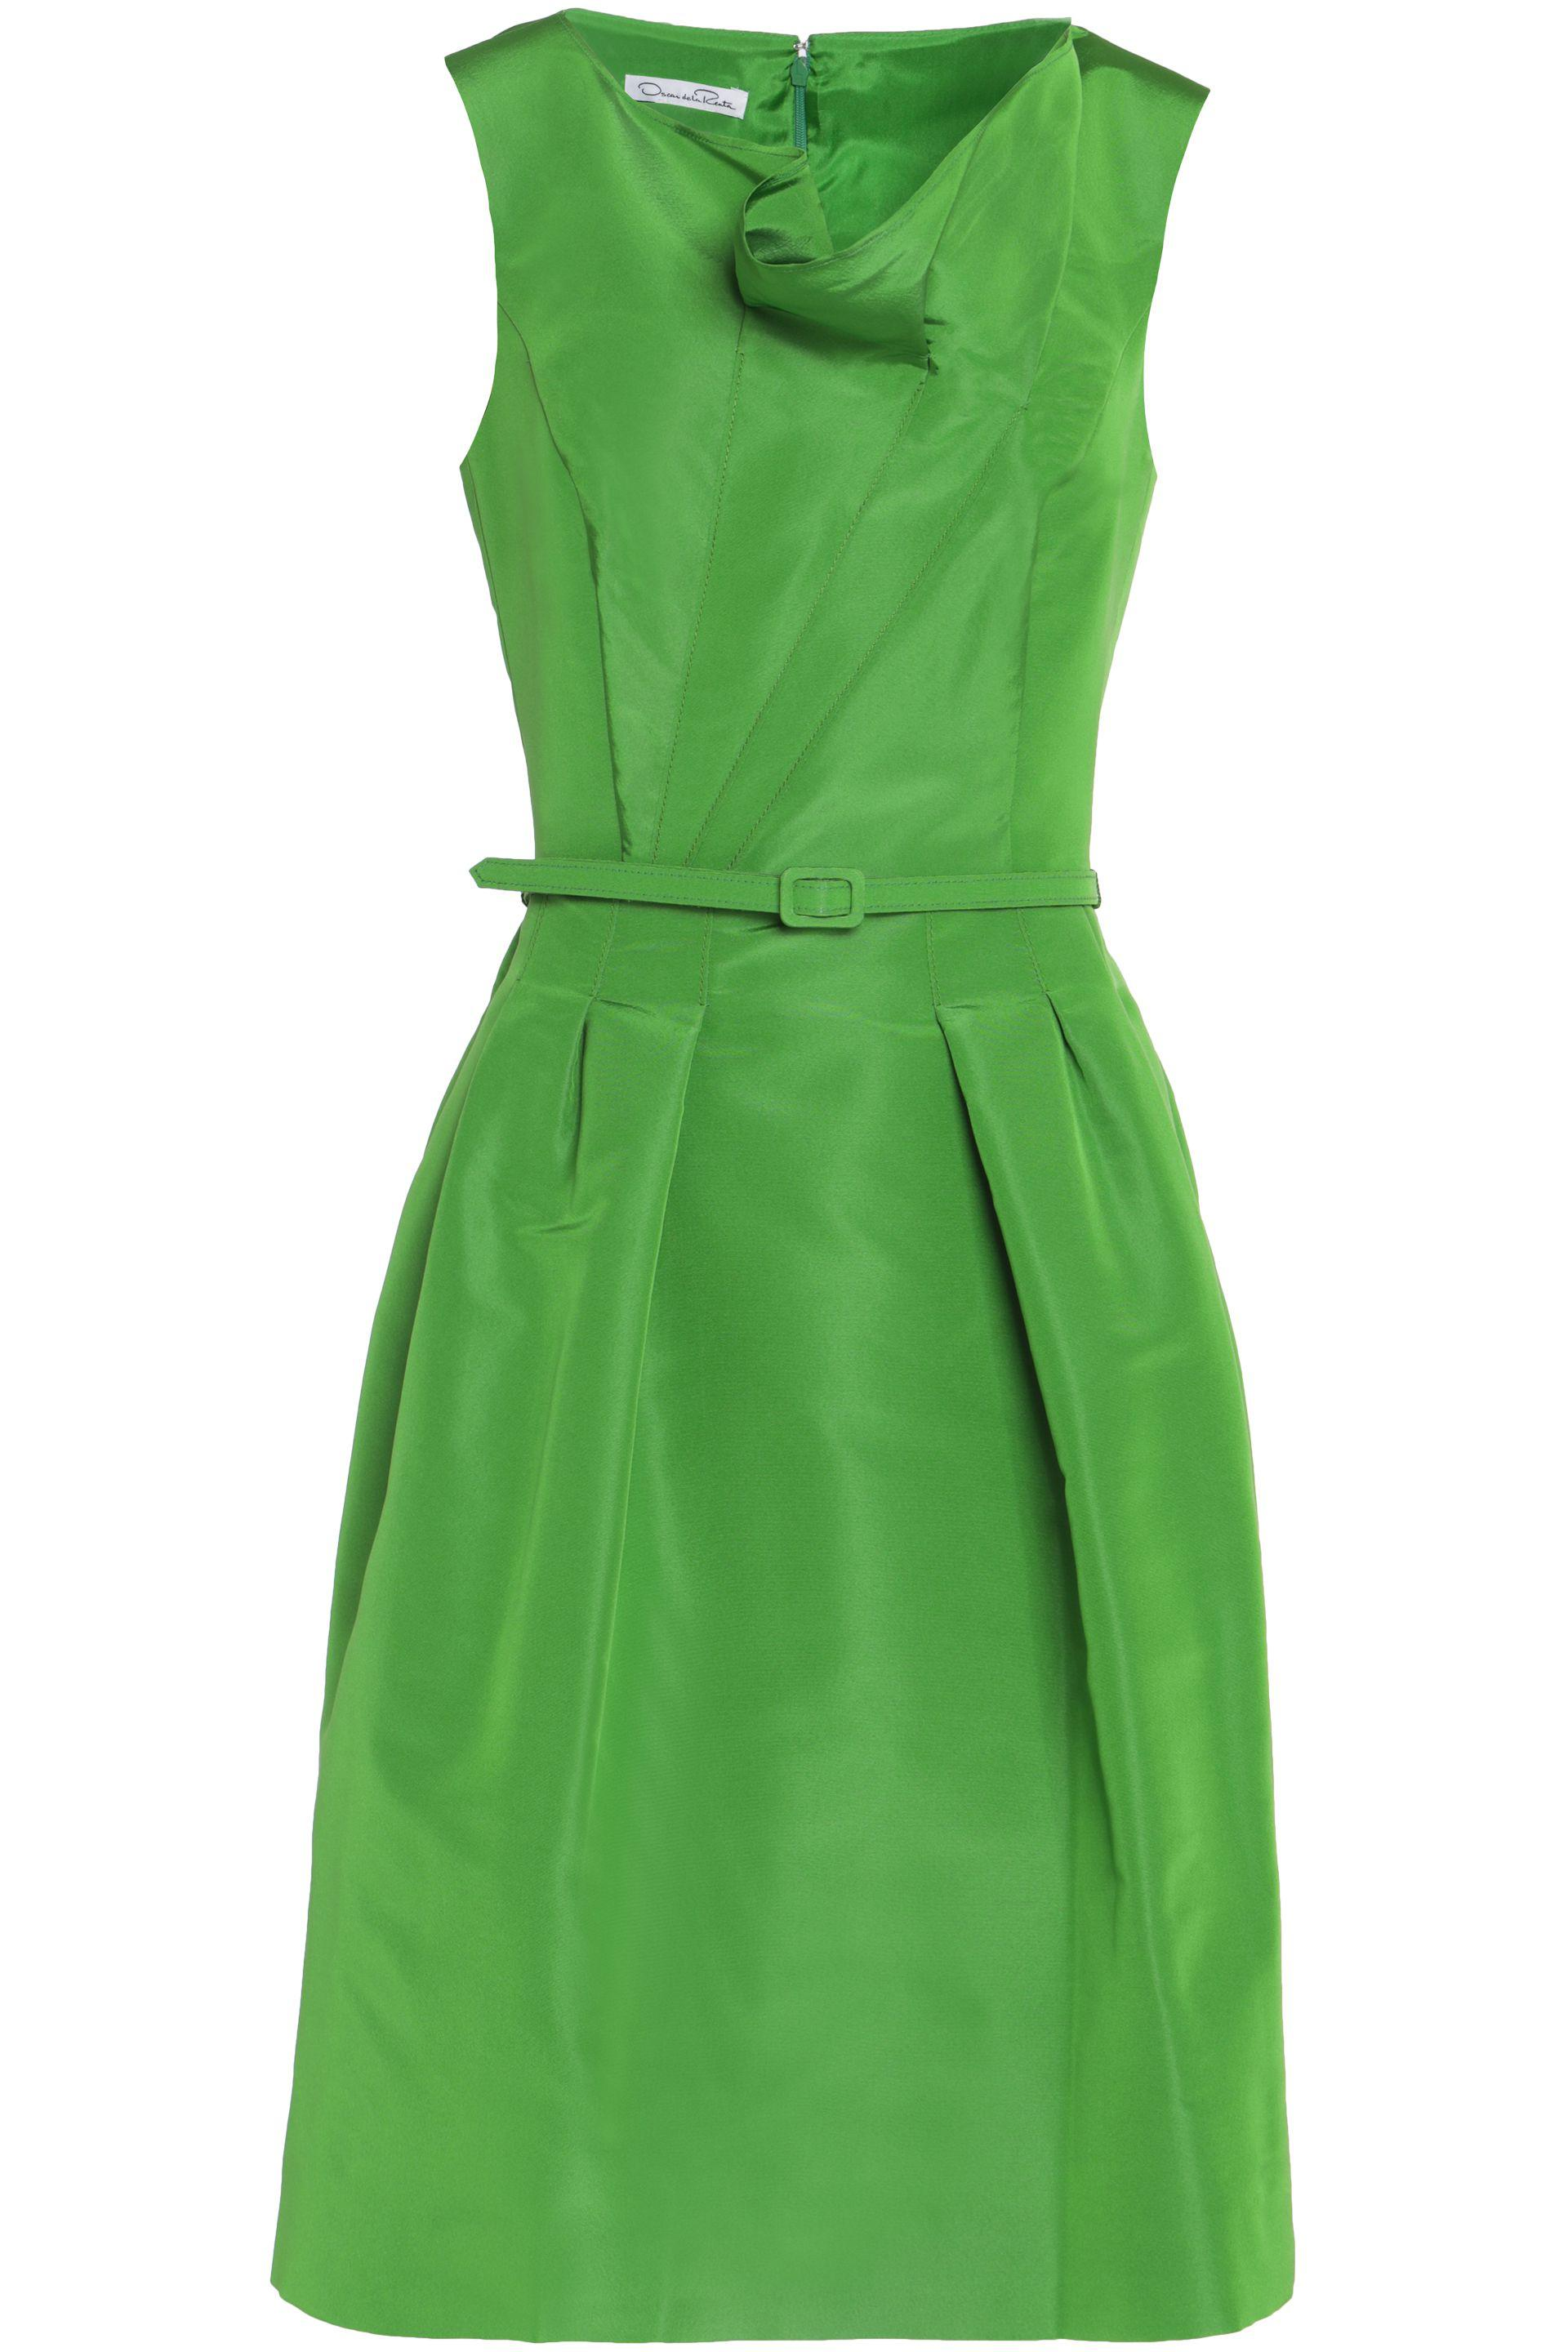 Oscar De La Renta Woman Belted Draped Duchesse Silk-satin Dress Bright Green Size 2 Oscar De La Renta fBInKLv